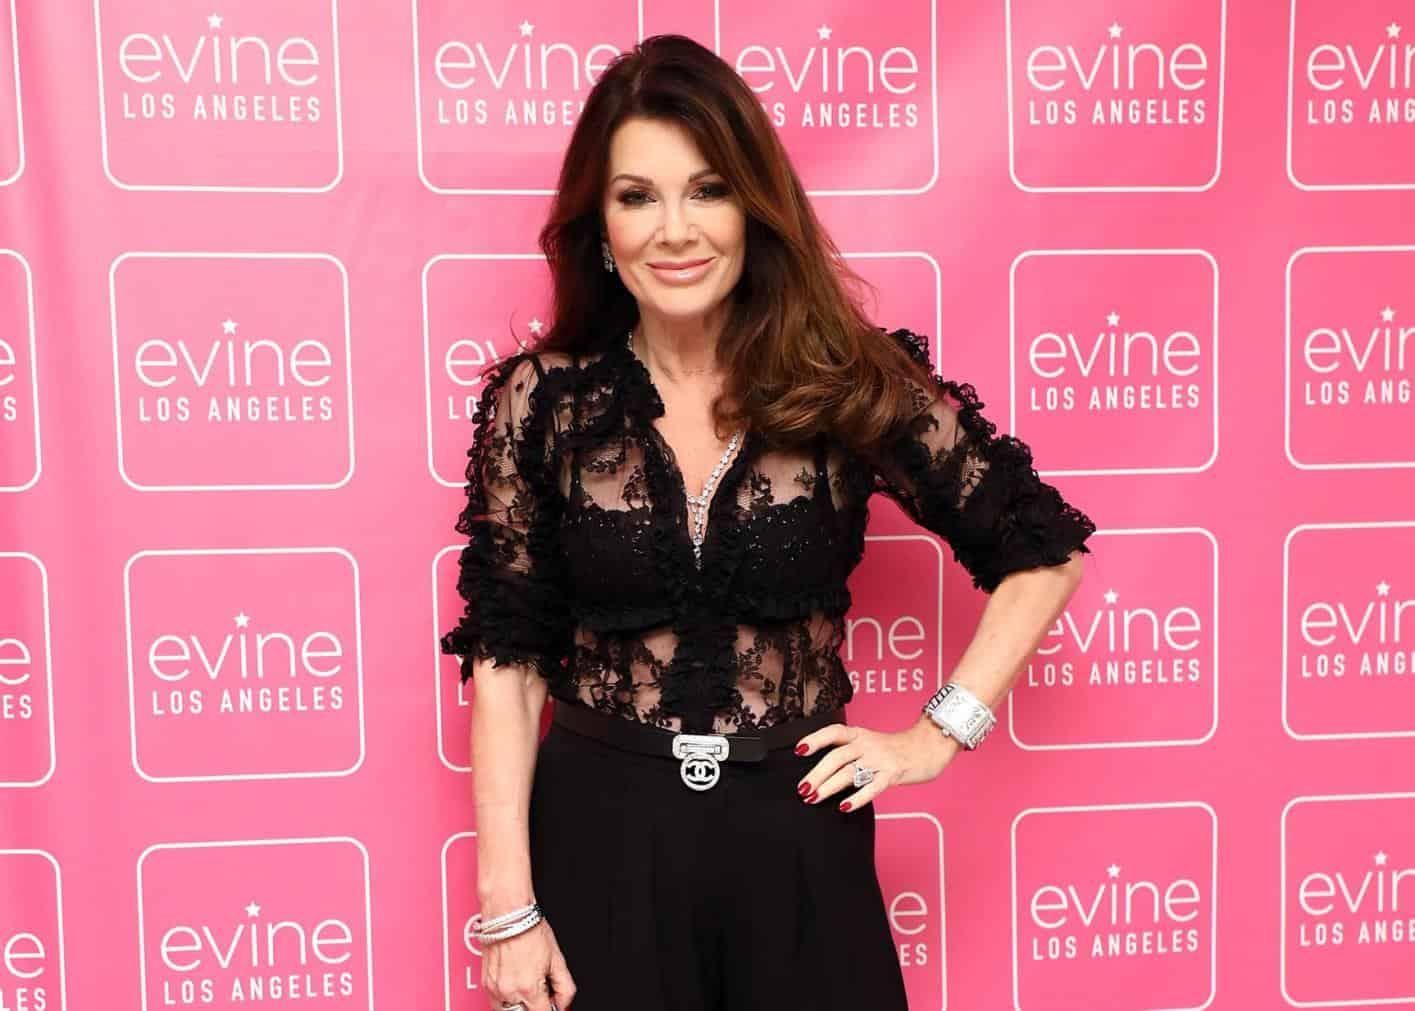 RHOBH Star Lisa Vanderpump Halts Filming on Vanderpump Rules After the Sudden Death of Her Mother